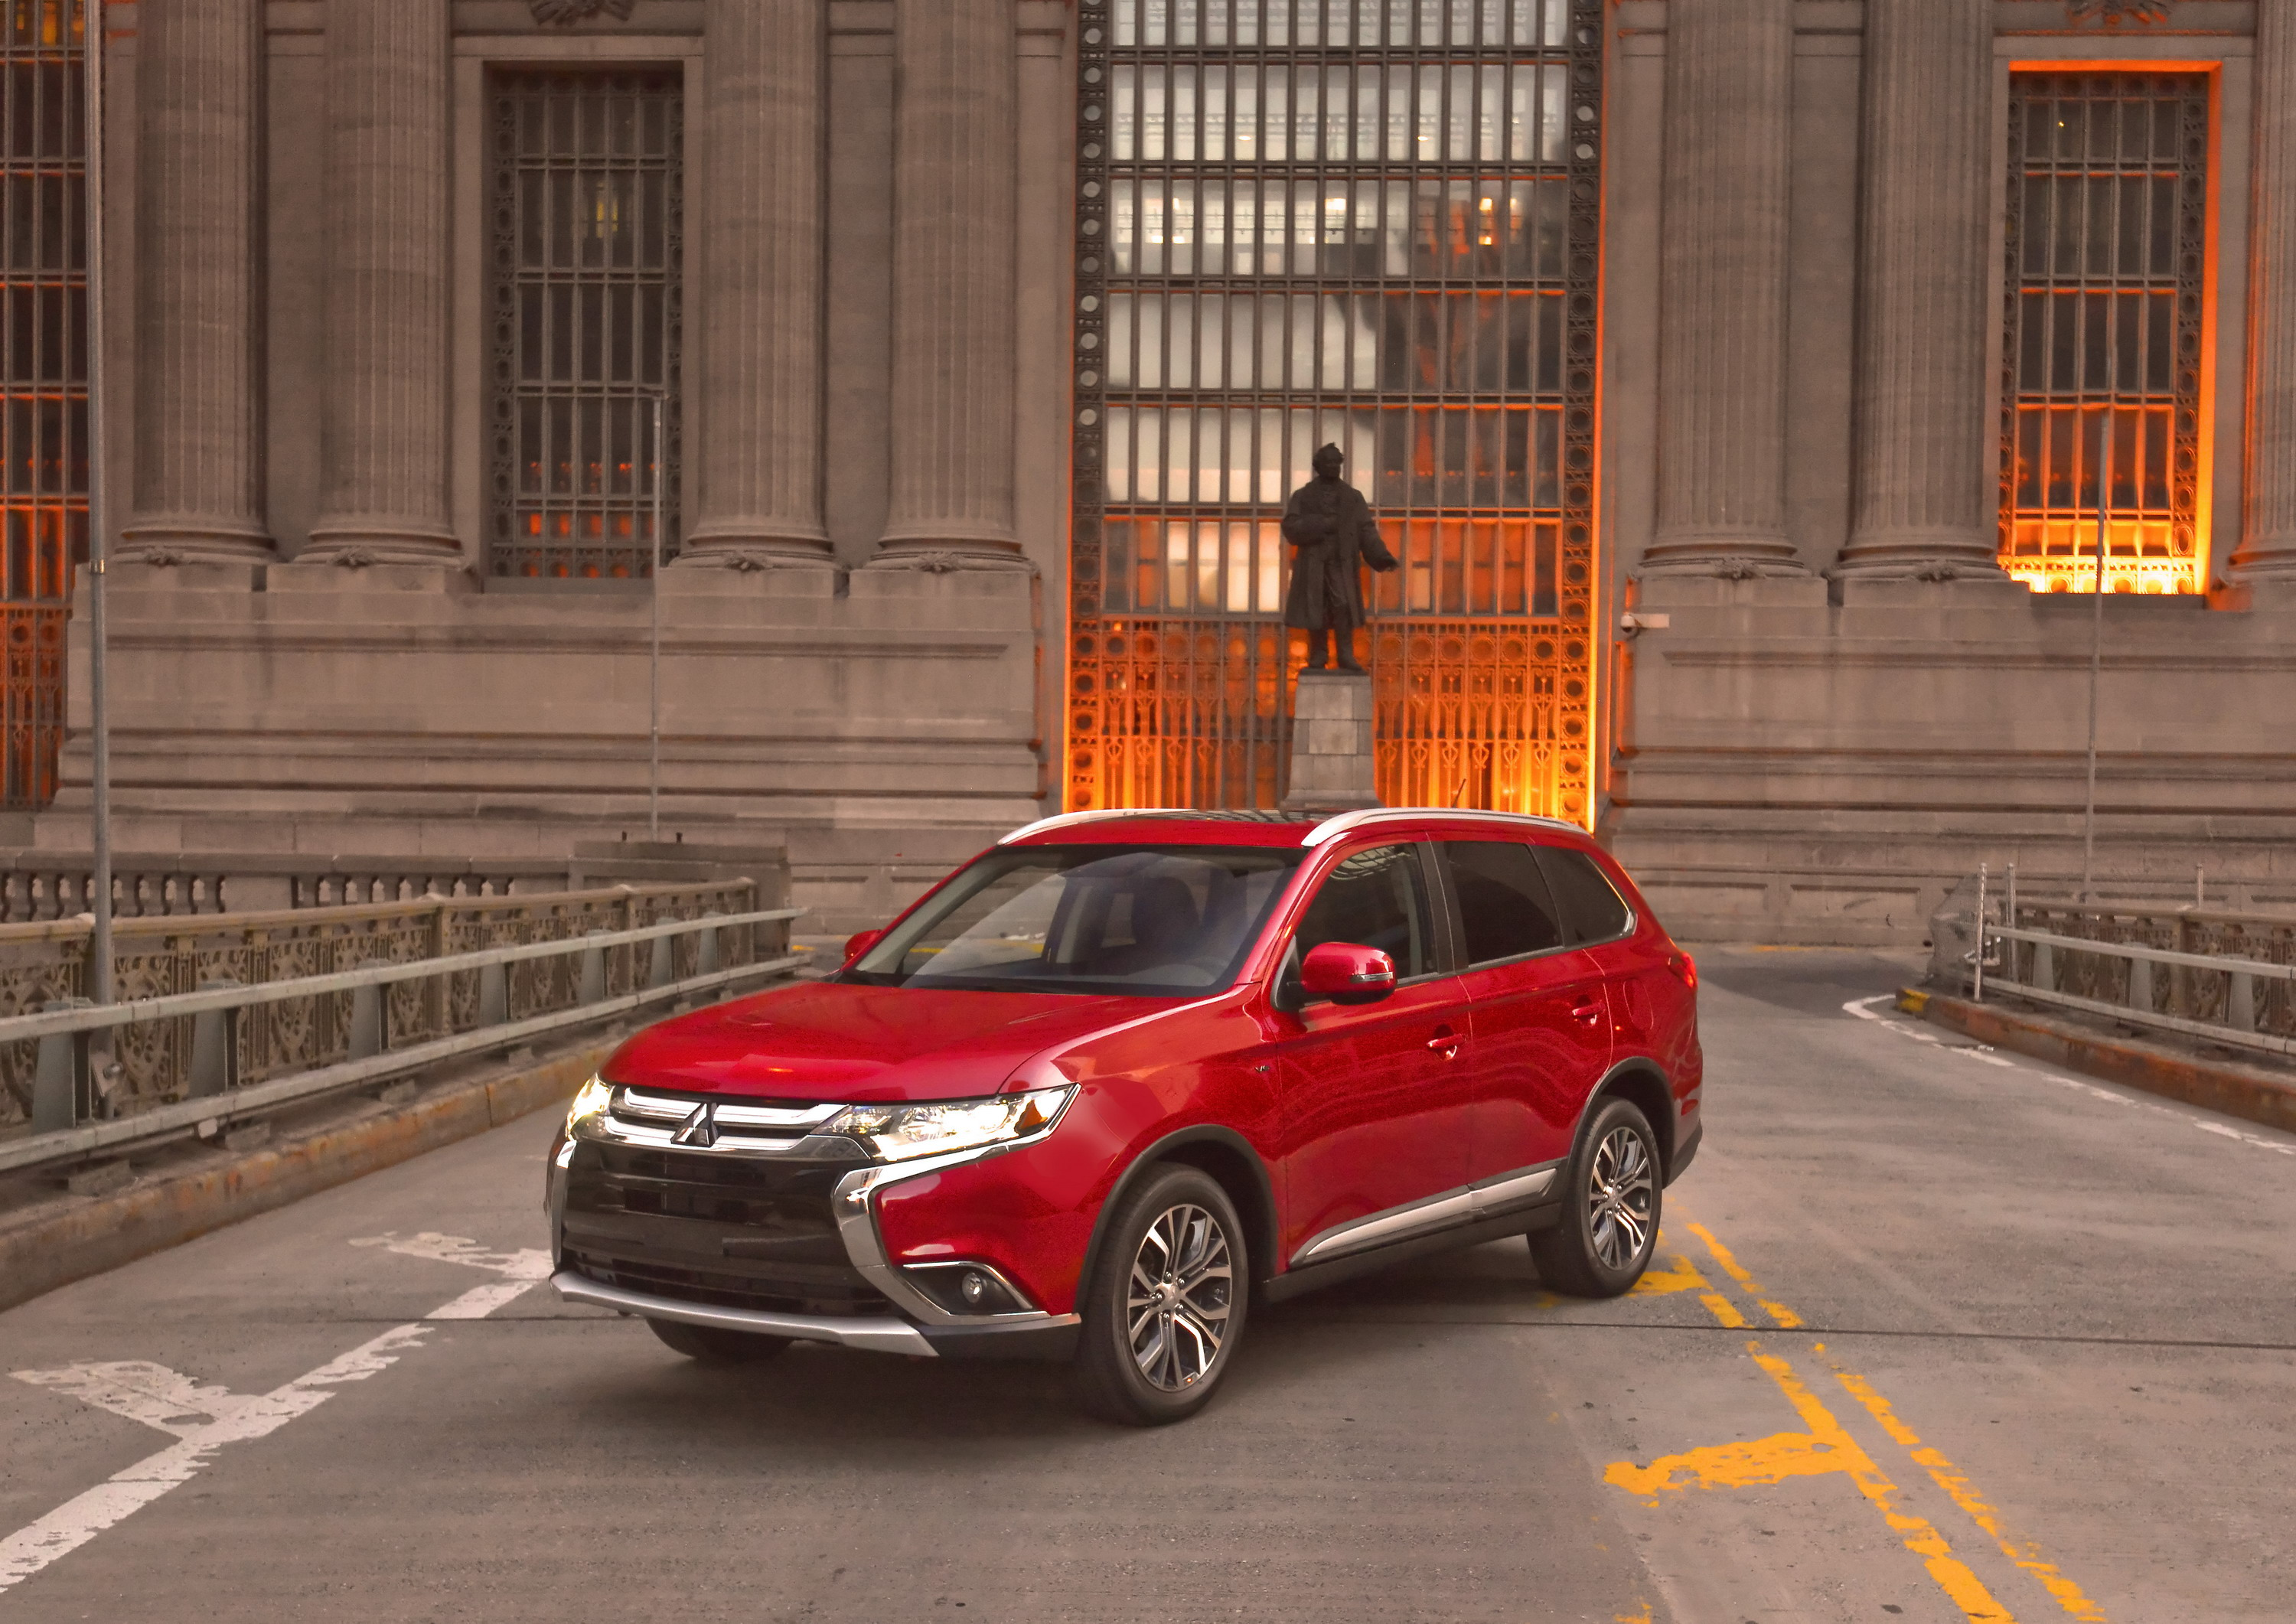 dodge cr when commodity nissan honda and compared be journey surprisingly stands well not to outlander known mitsubishi v but wpnews a rogue crossover the up it